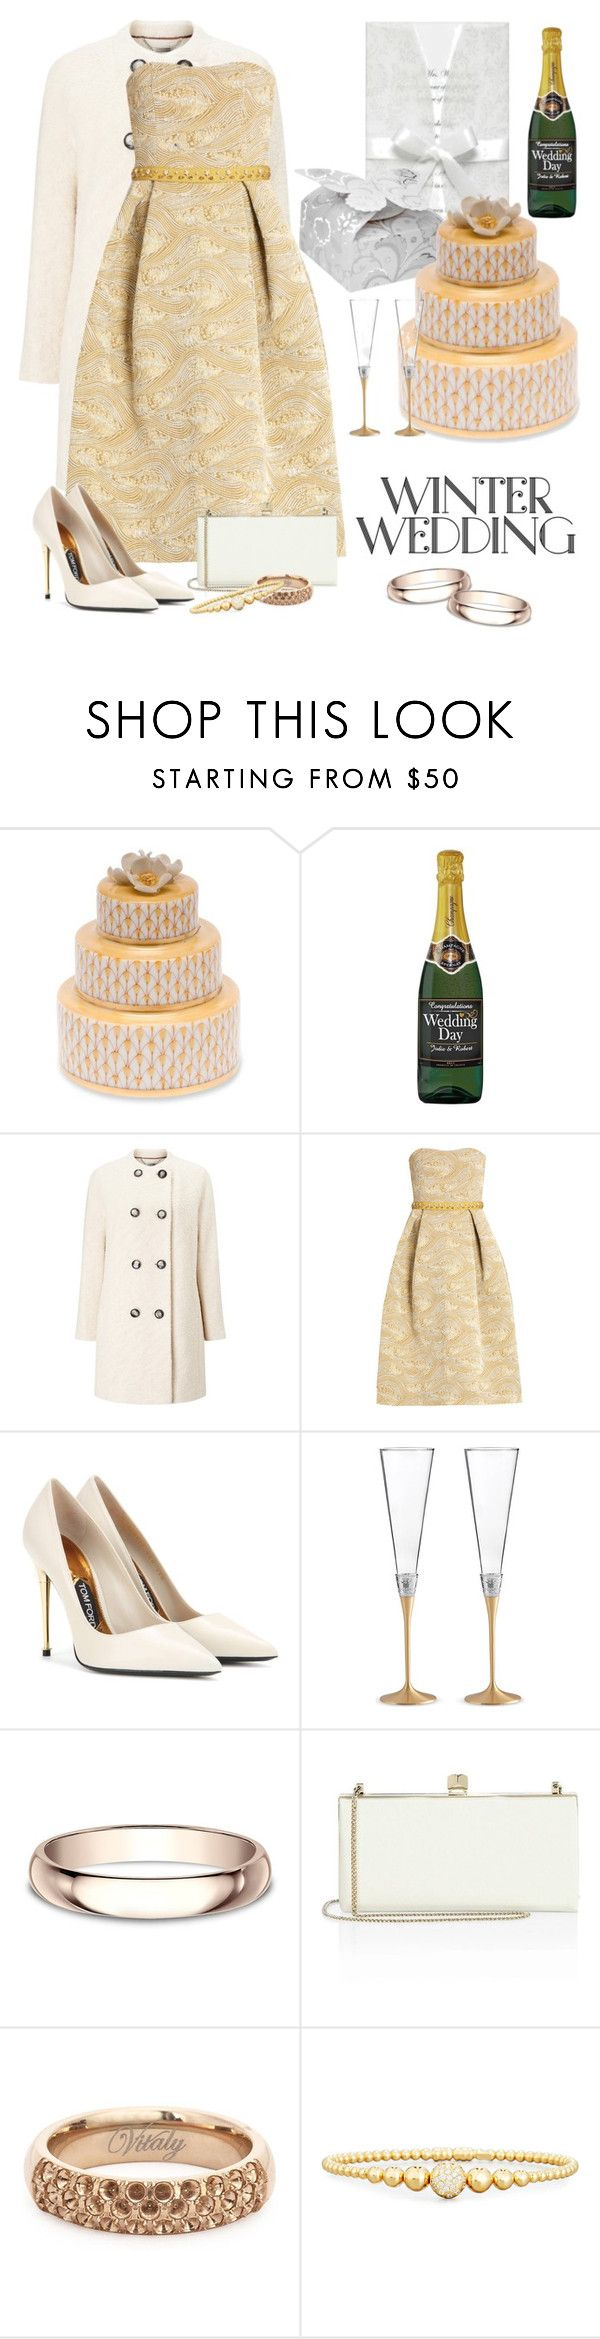 Wedding wishes by joyfulmum ❤ liked on polyvore featuring harrison herend windsmoor